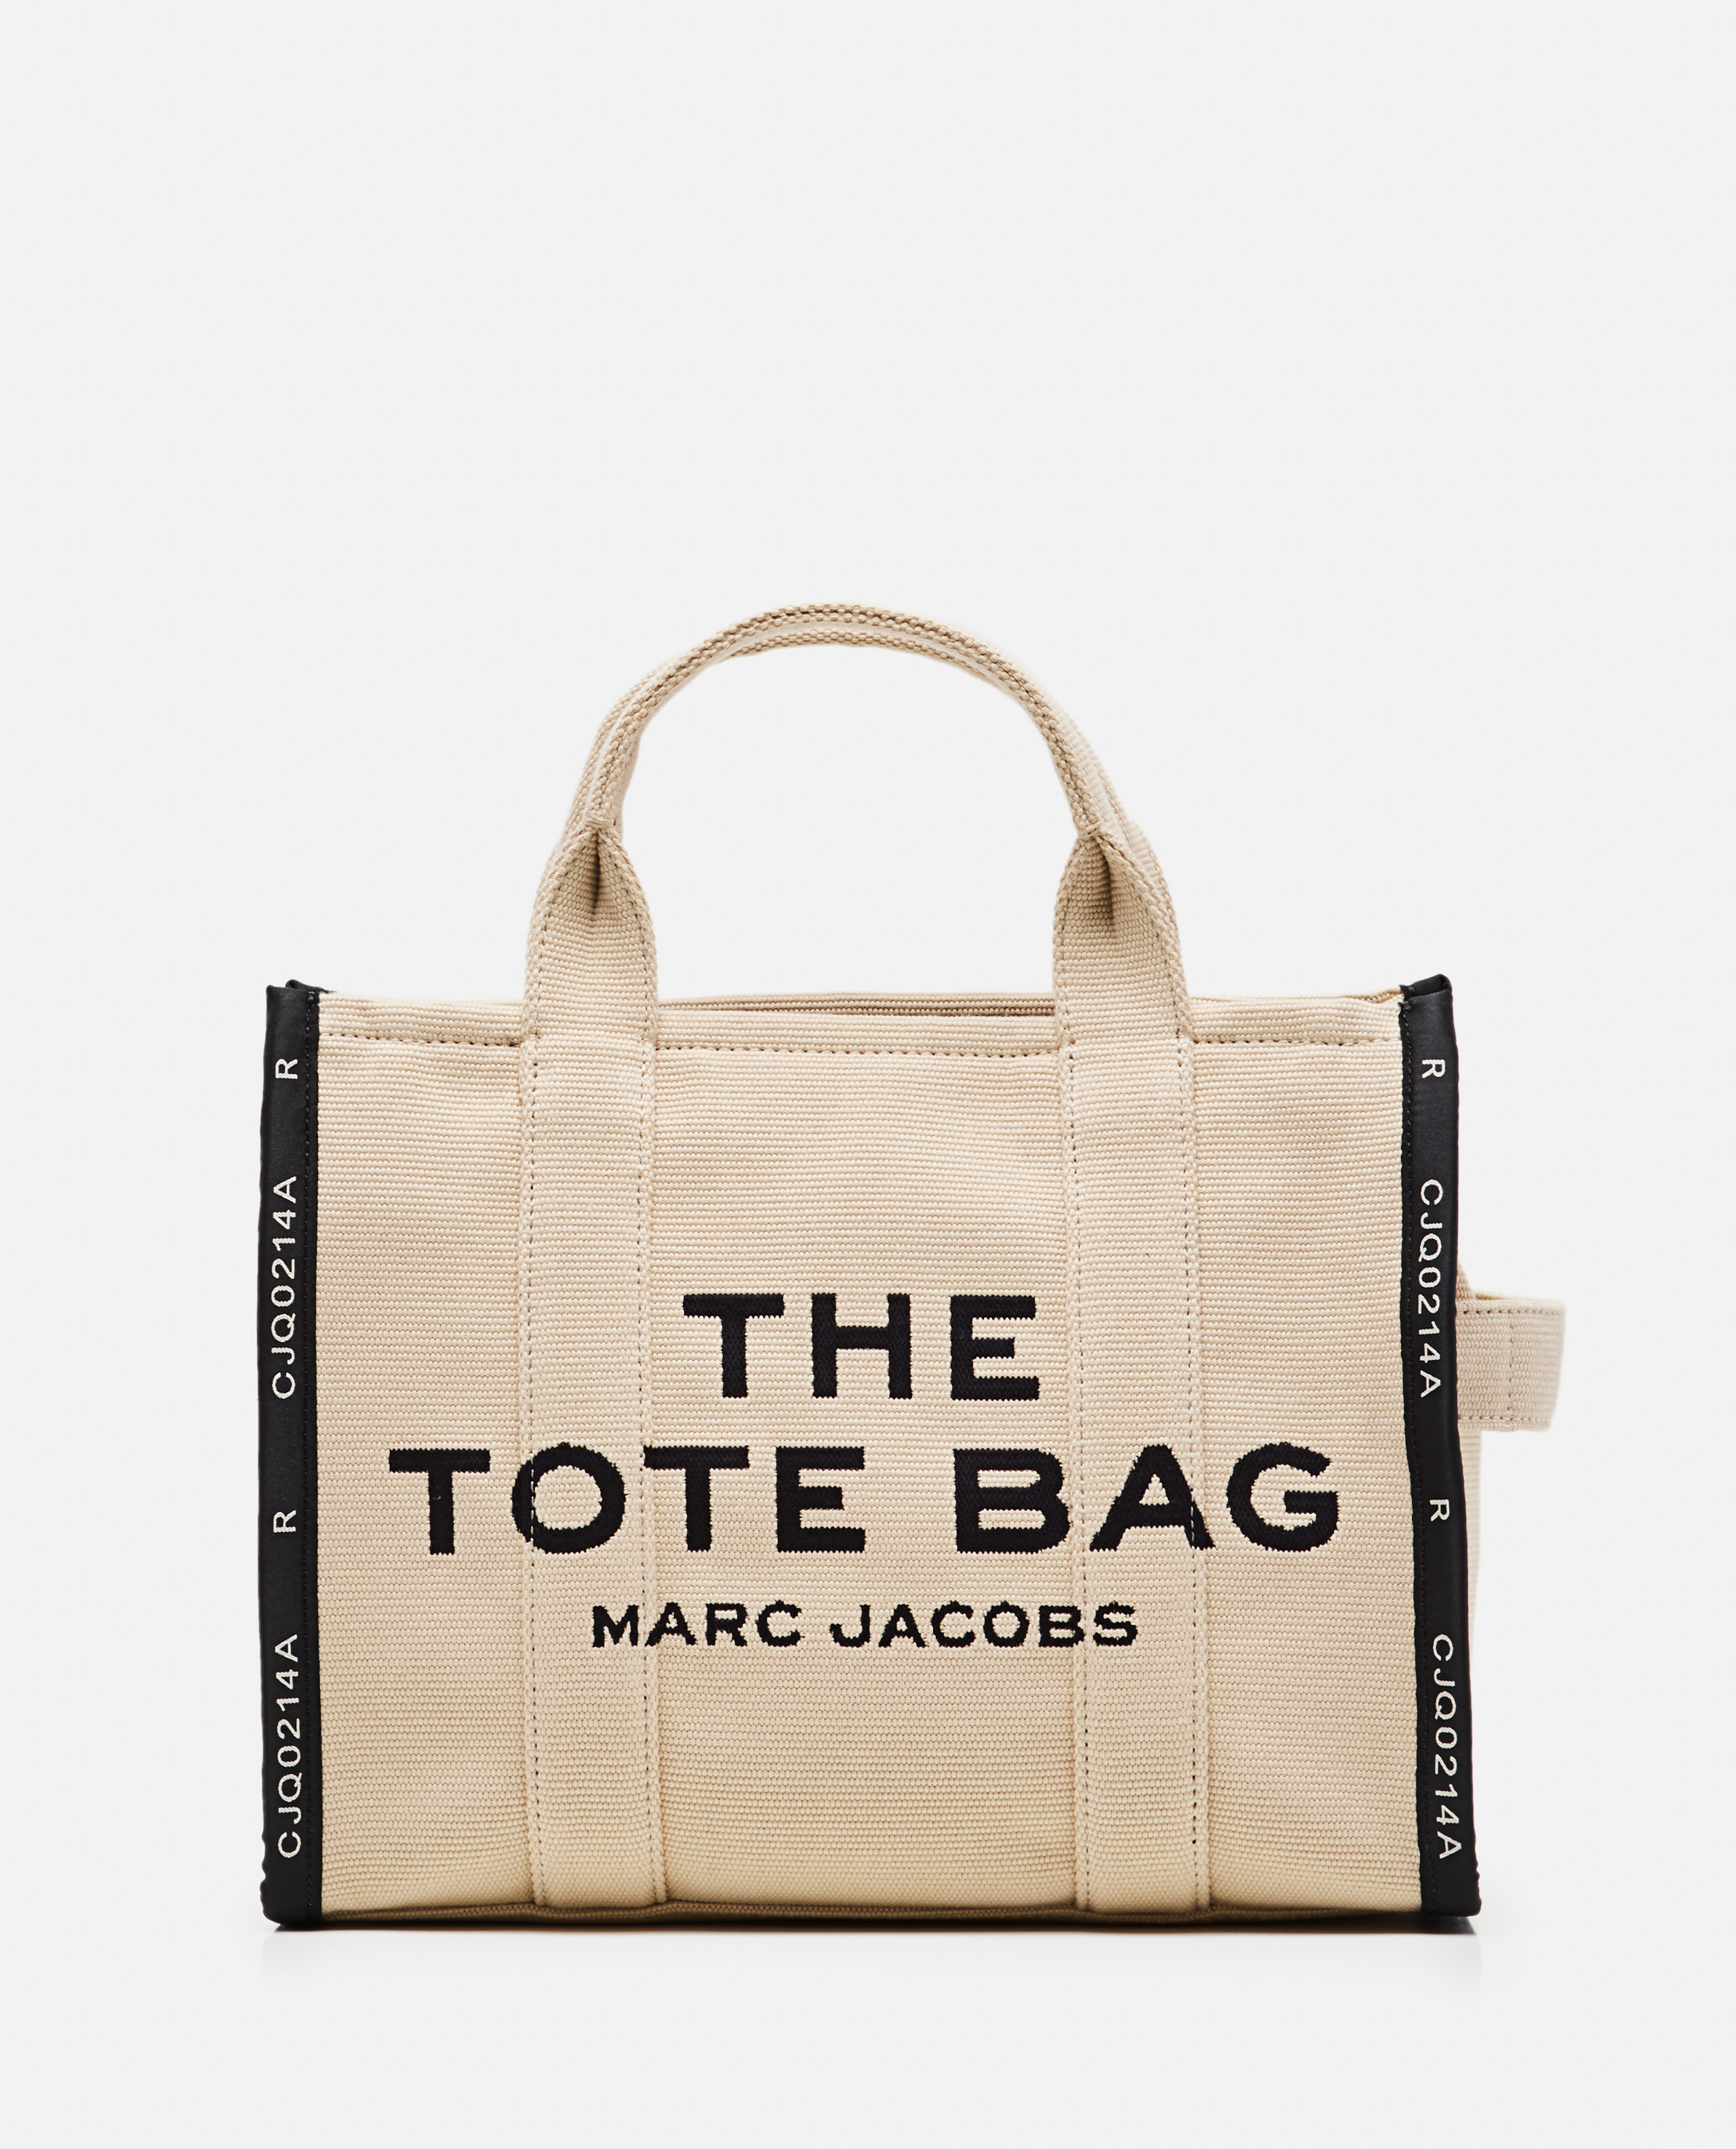 The Jacquard Small Traveler Tote Bag